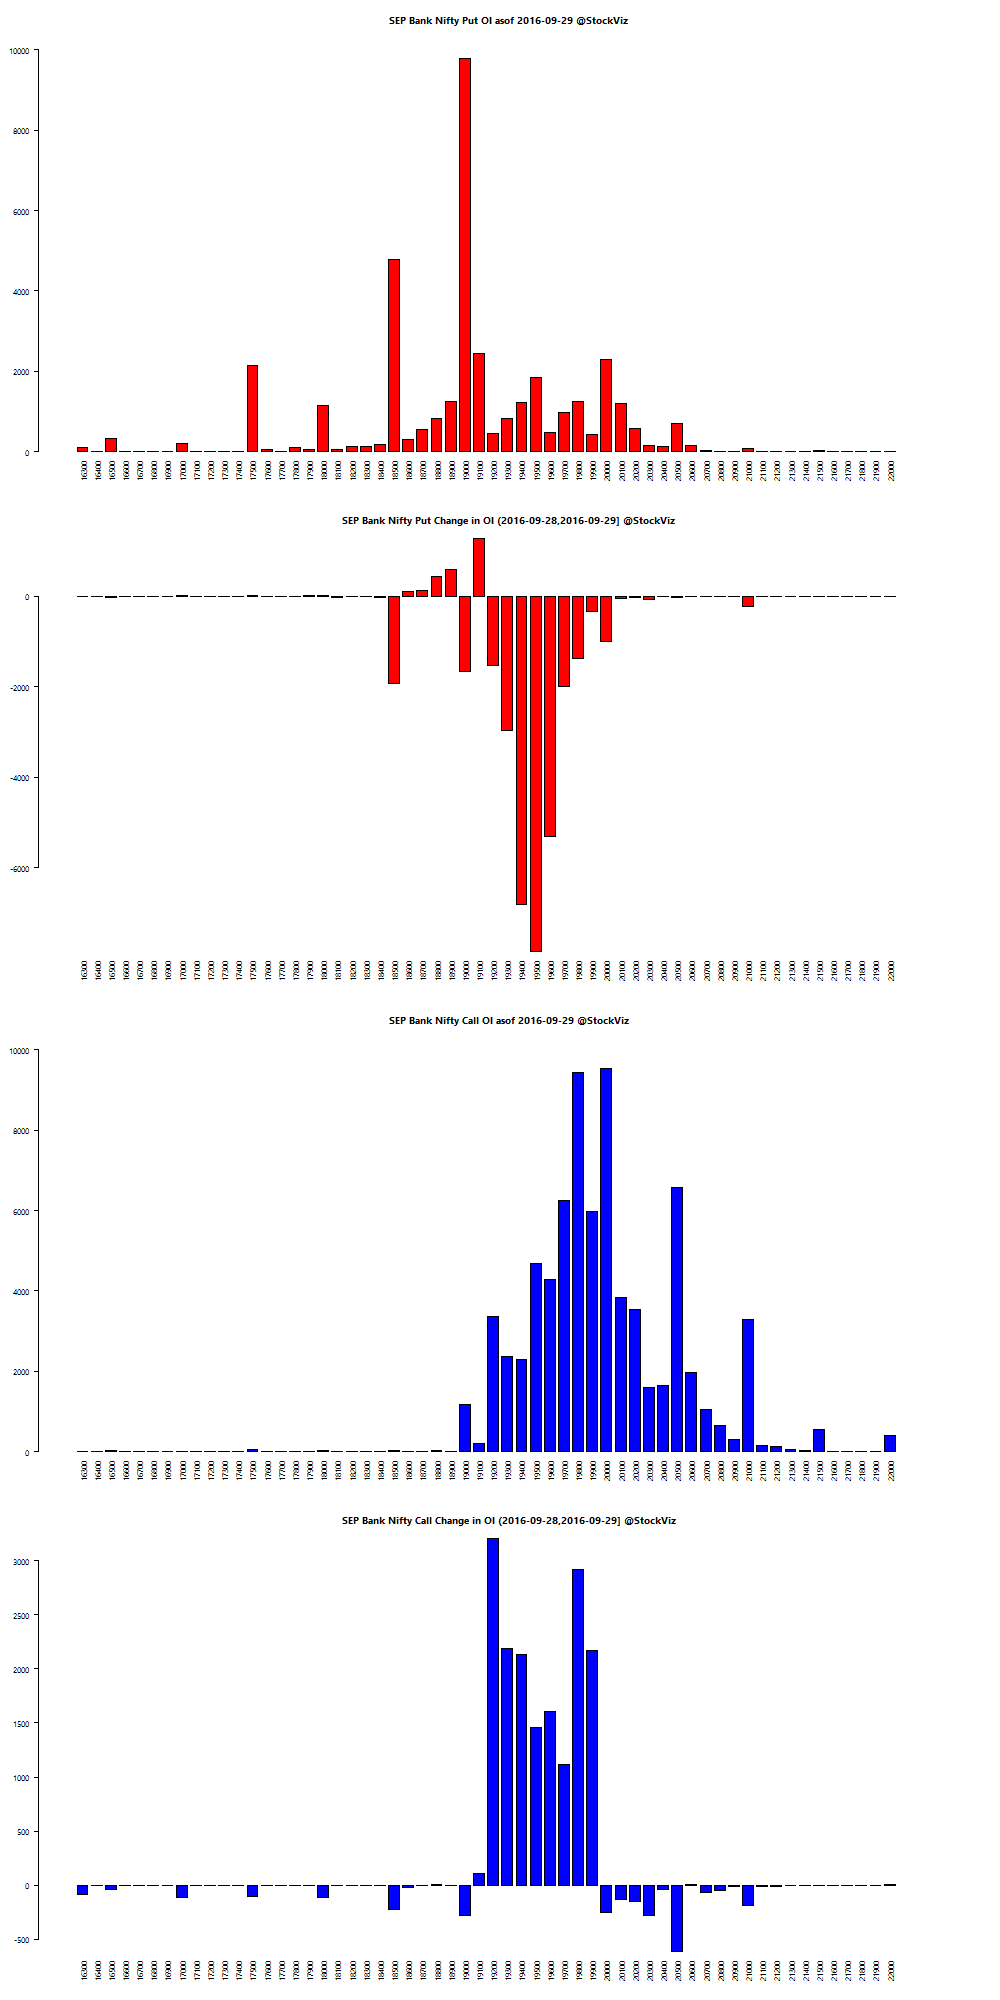 SEP BANKNIFTY OI chart